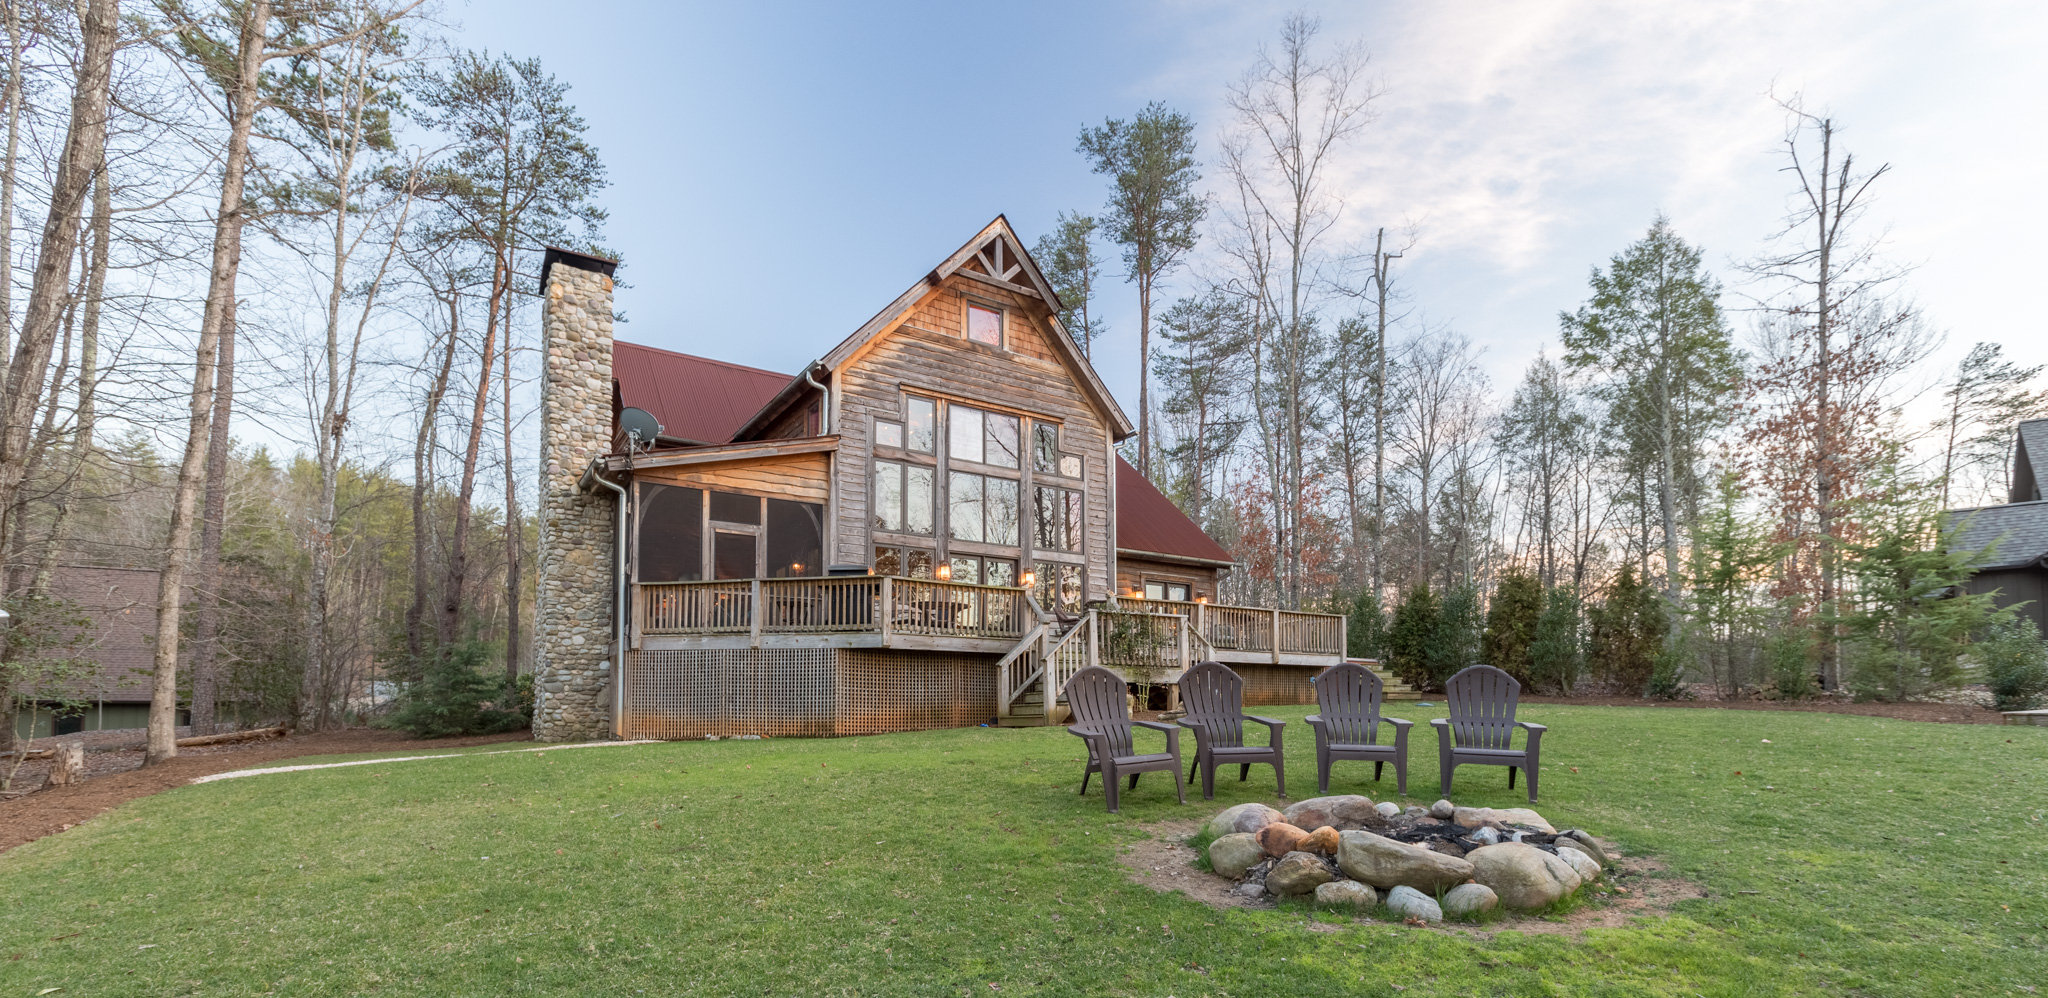 Twilight picture of cabin on Lake James in Nebo, NC - Nebo Real Estate Photography